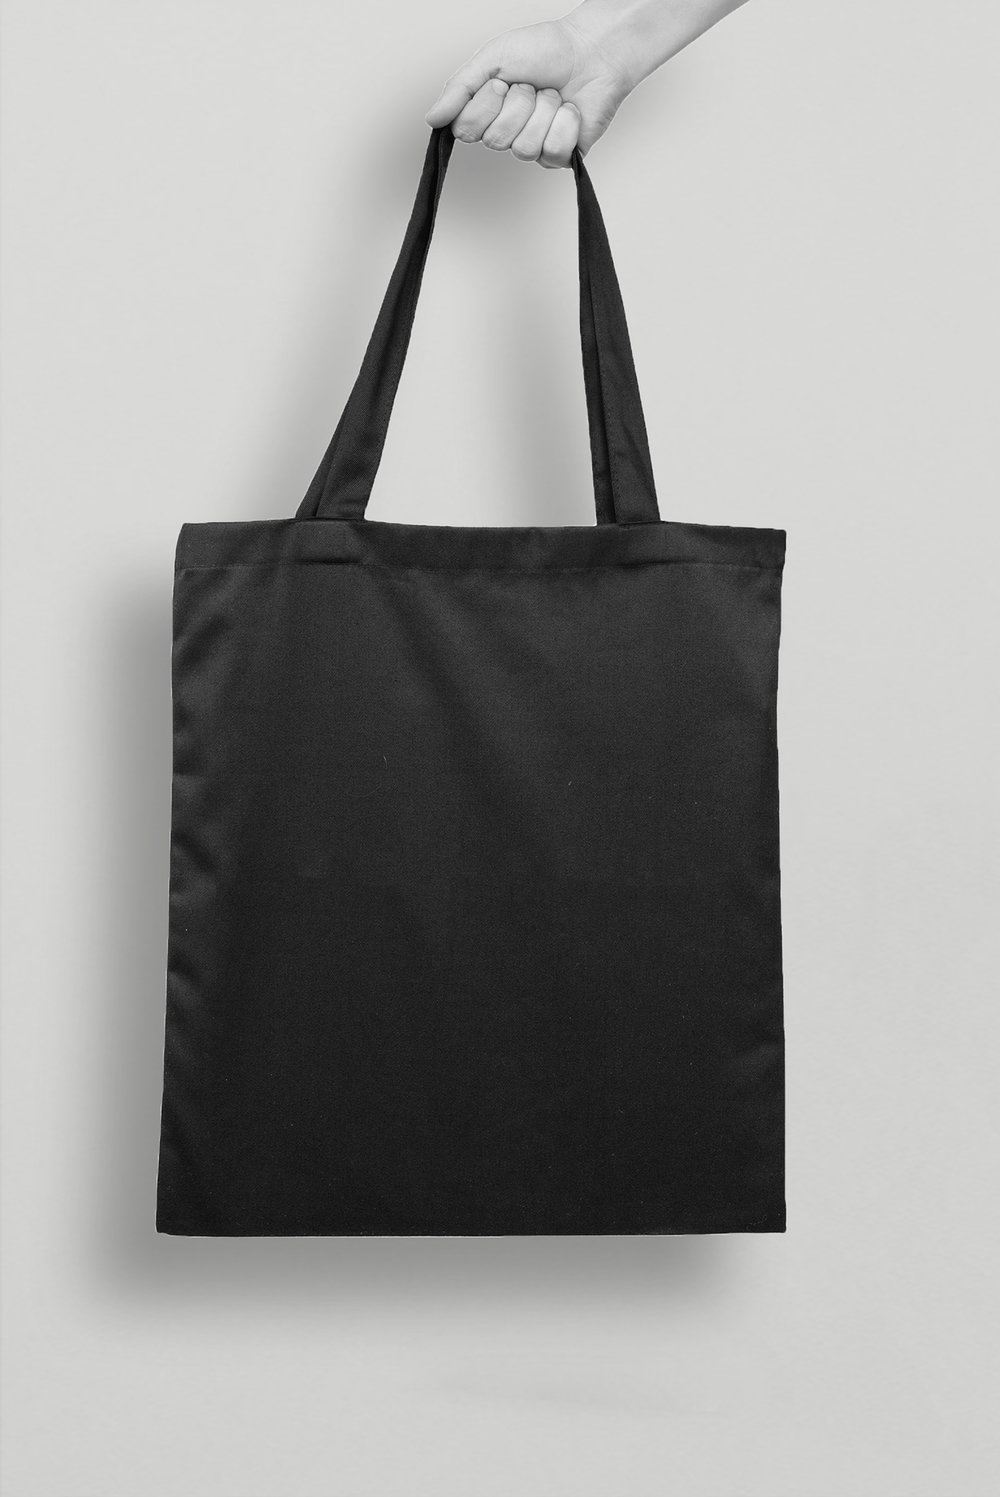 tote black back.jpg